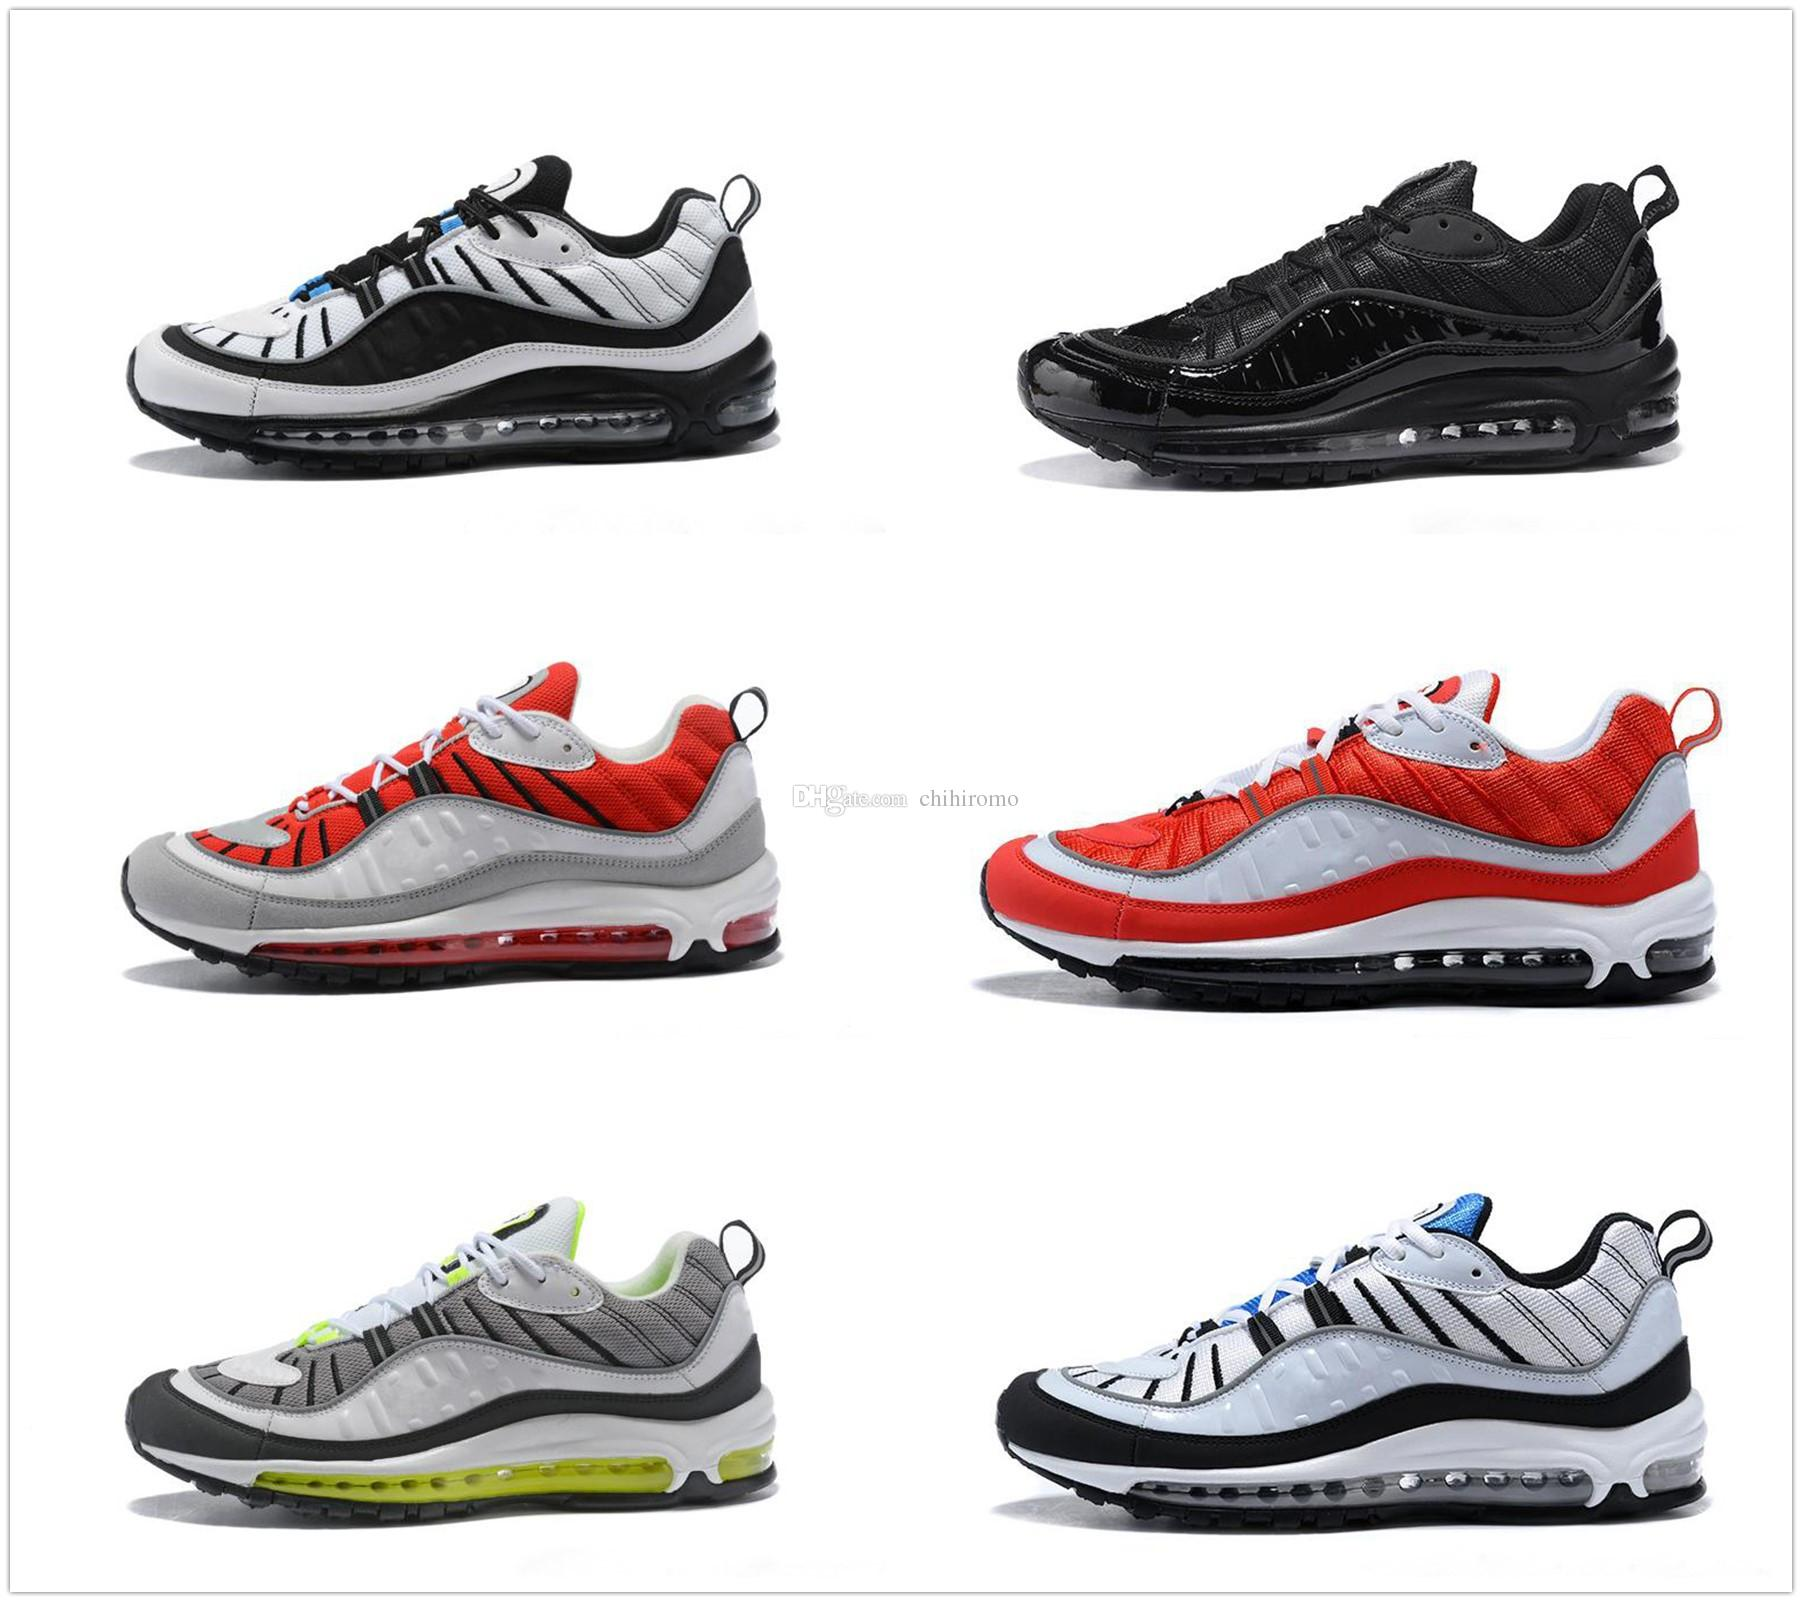 c487a7d7c24845 New Top 98 98s Stripe Navy Blue White Gundam Style Best Quality Mens Casual Running  Shoes Sport Discount Sneakers Size 7 12 Girls White Tennis Shoes Best ...